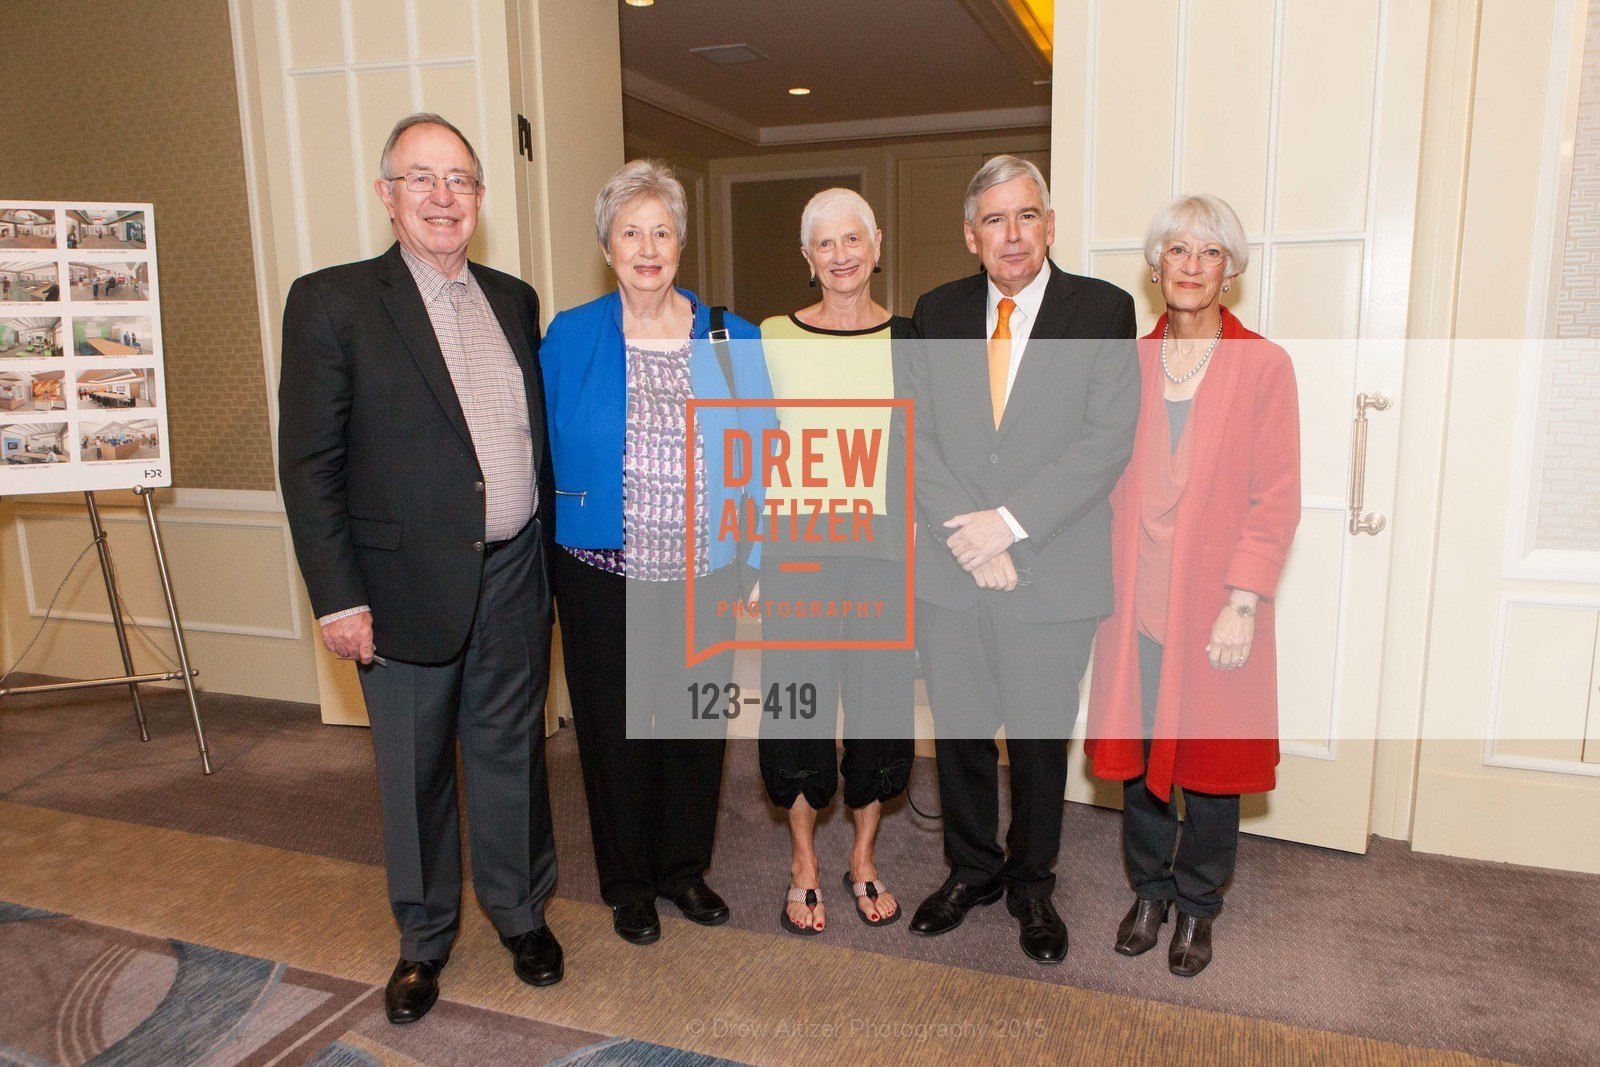 Bob Willis, Anne-Marie Willis, Sharon Hofstedt, Jim McElwee, Suzy McElwee, HealthRight 360 BE THE  CHANGE, Four Season Hotel, Veranda Room. 757 Market Street, October 28th, 2015,Drew Altizer, Drew Altizer Photography, full-service agency, private events, San Francisco photographer, photographer california